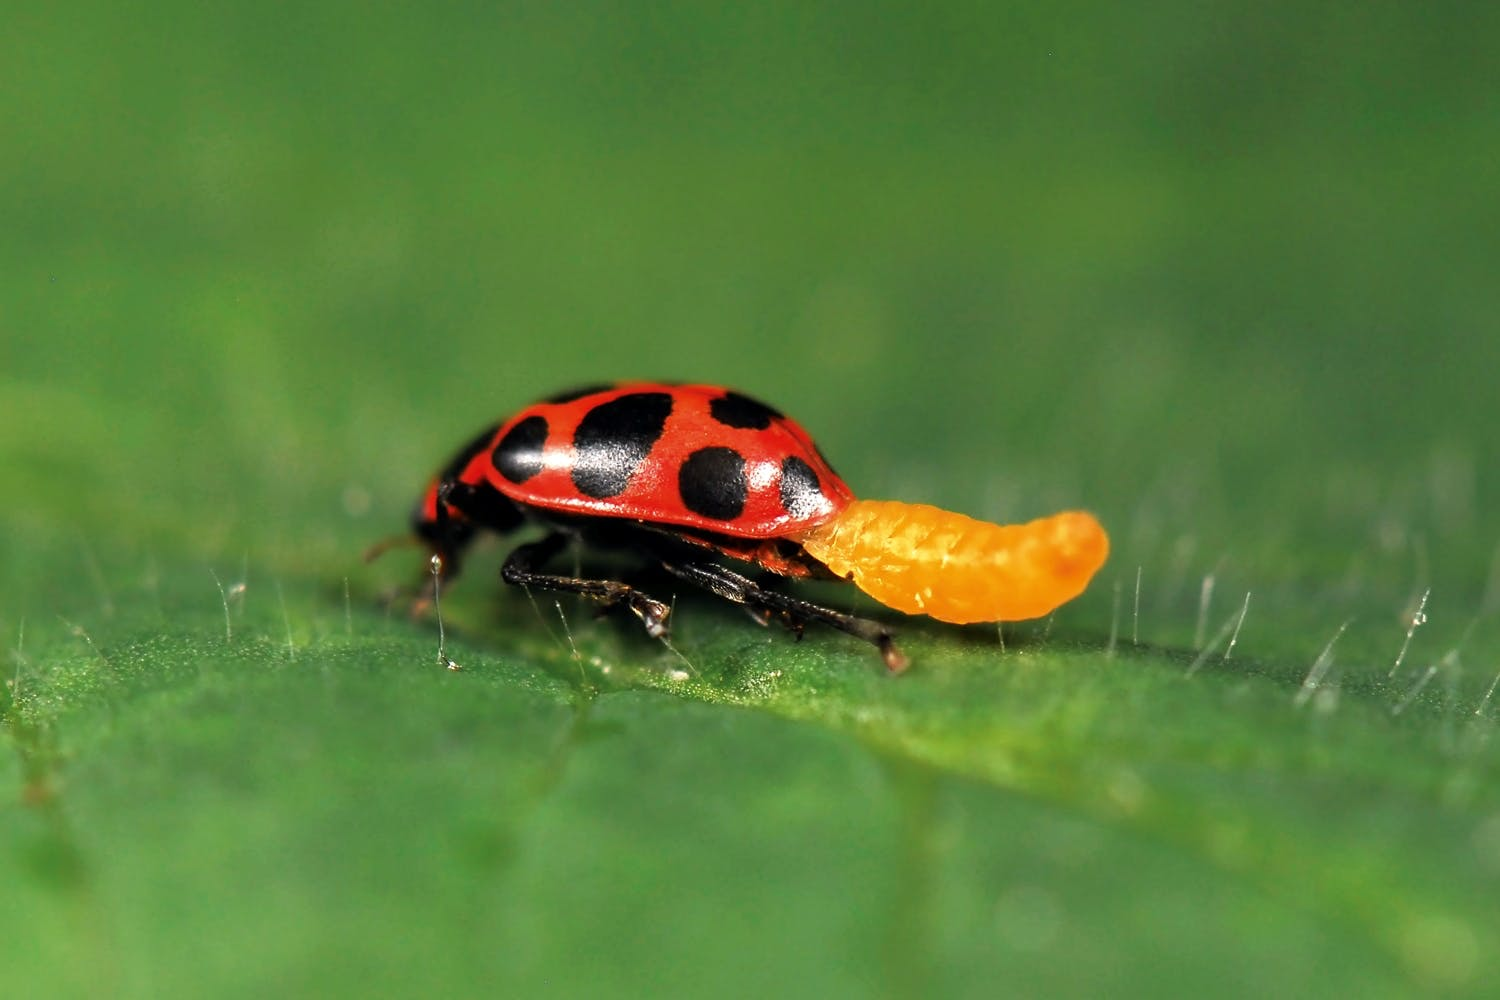 Ladybird infected by larvae